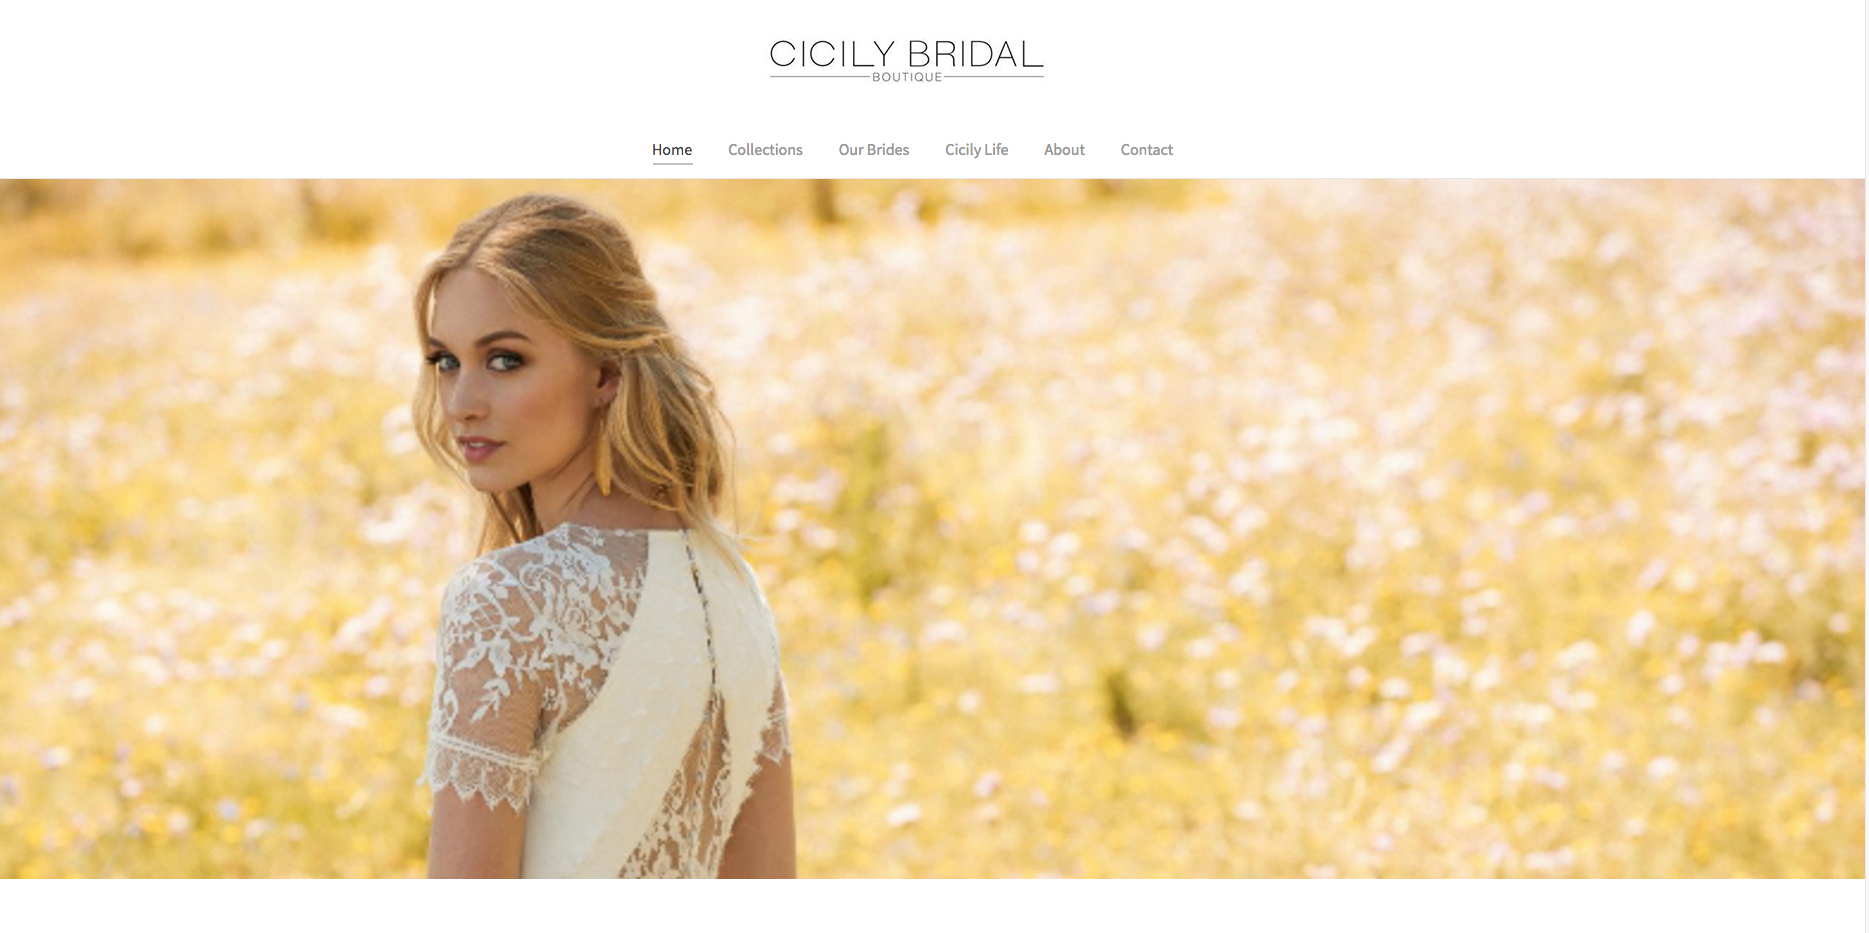 Cicily Bridal Website Homepage